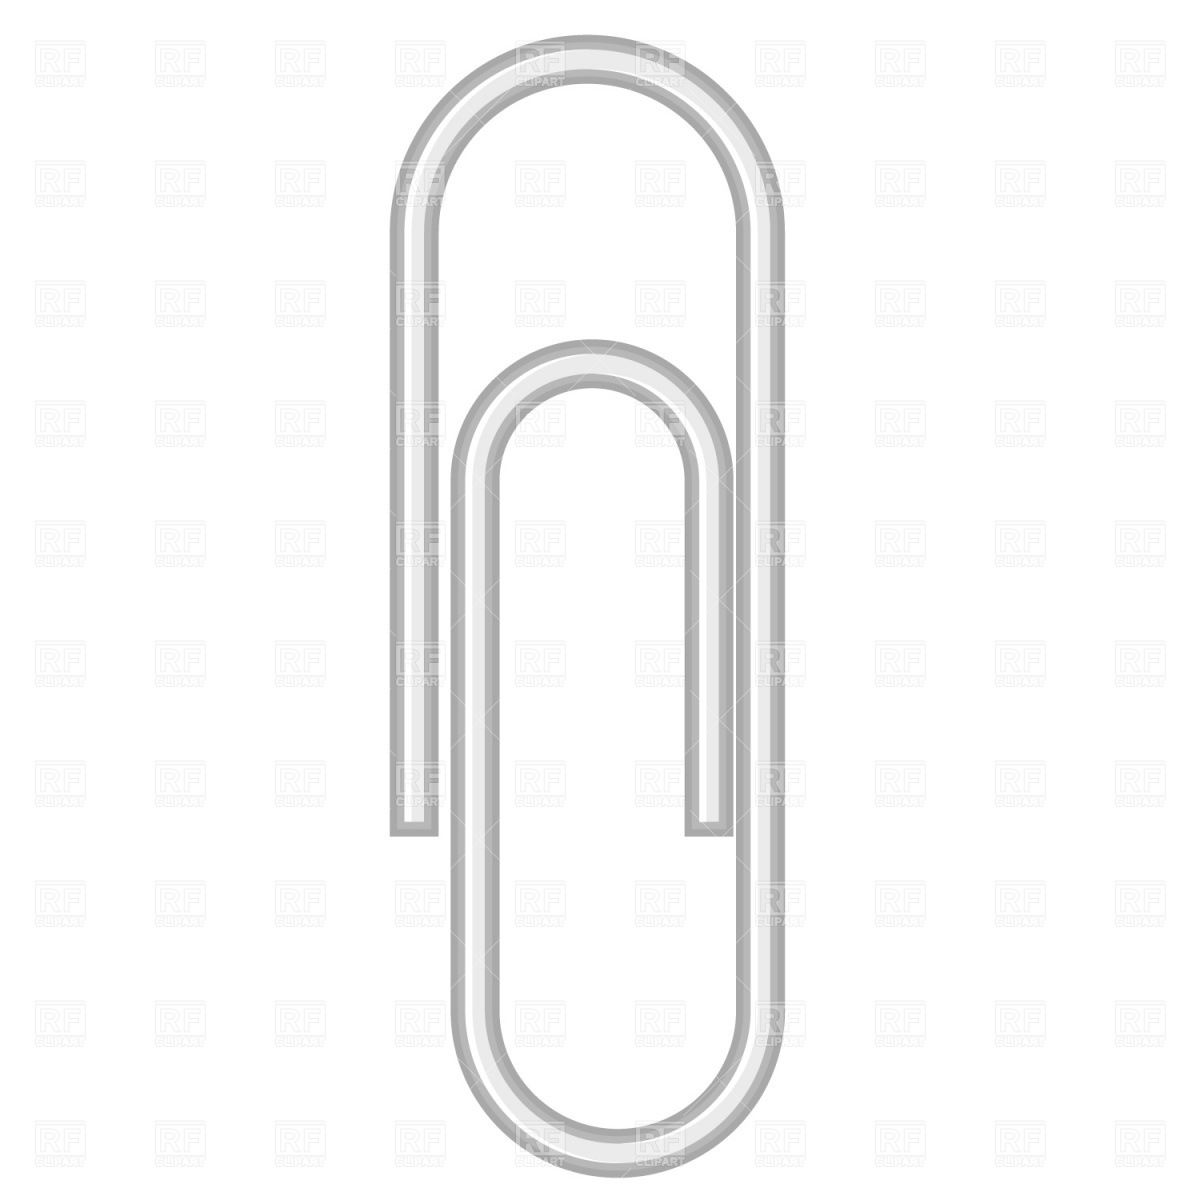 14 Paperclip Art Vector Images